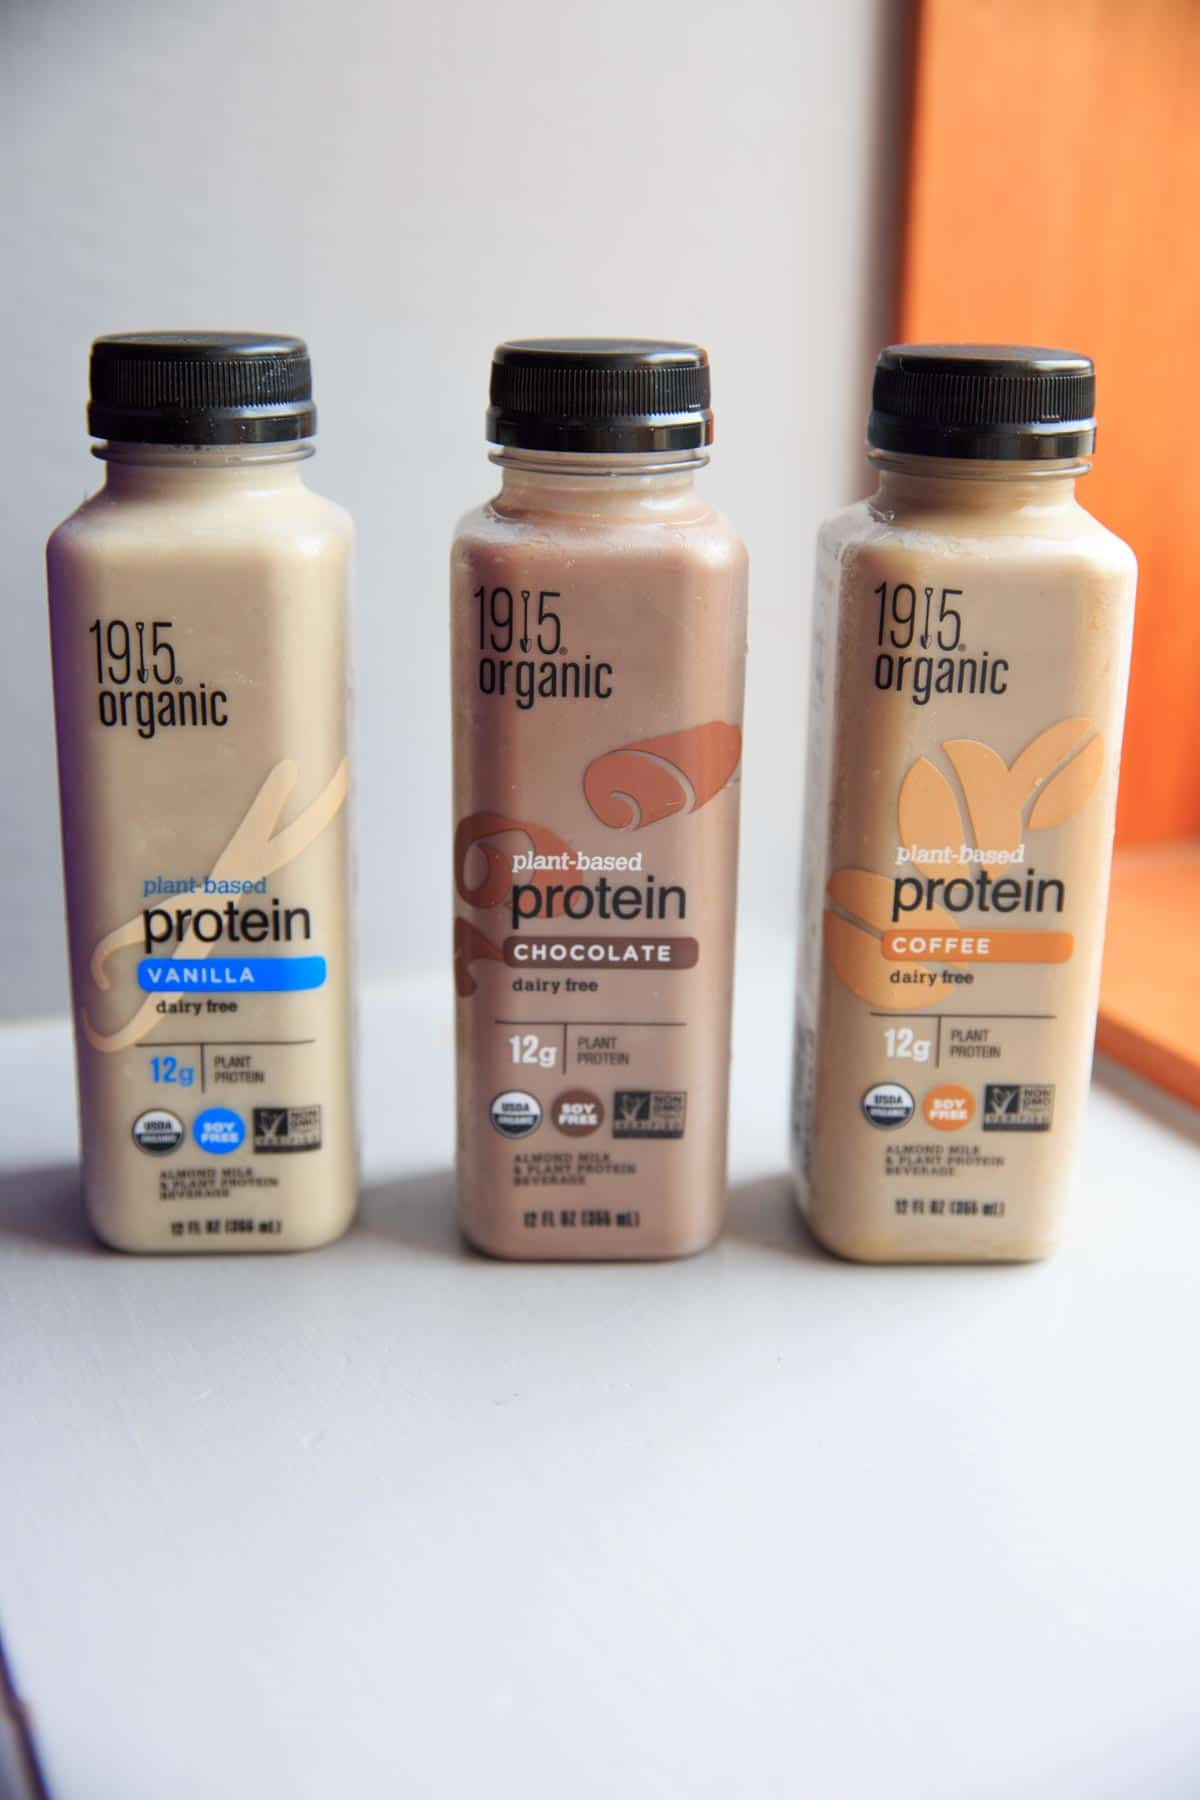 1915 Organic Protein Drink - Chocolate, Vanilla and Coffee